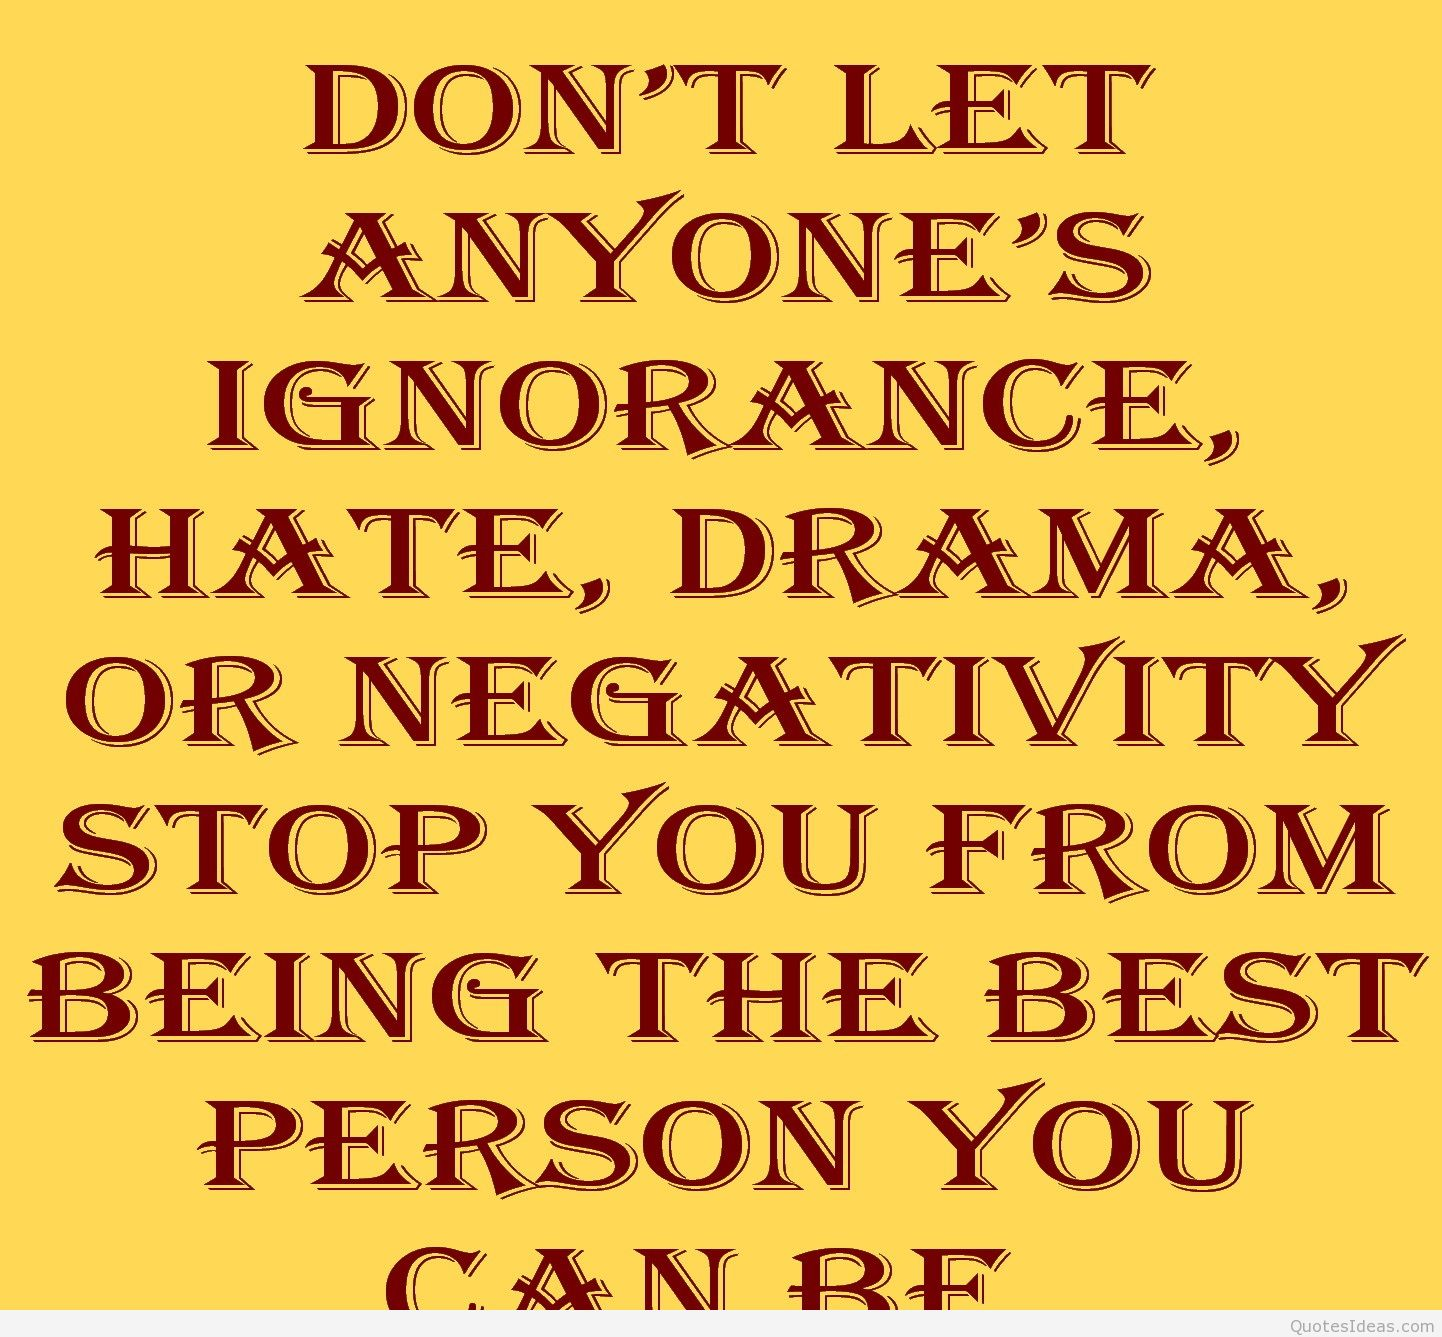 Quotes About People Being Ignorant: 65 Top Ignorance Quotes & Sayings